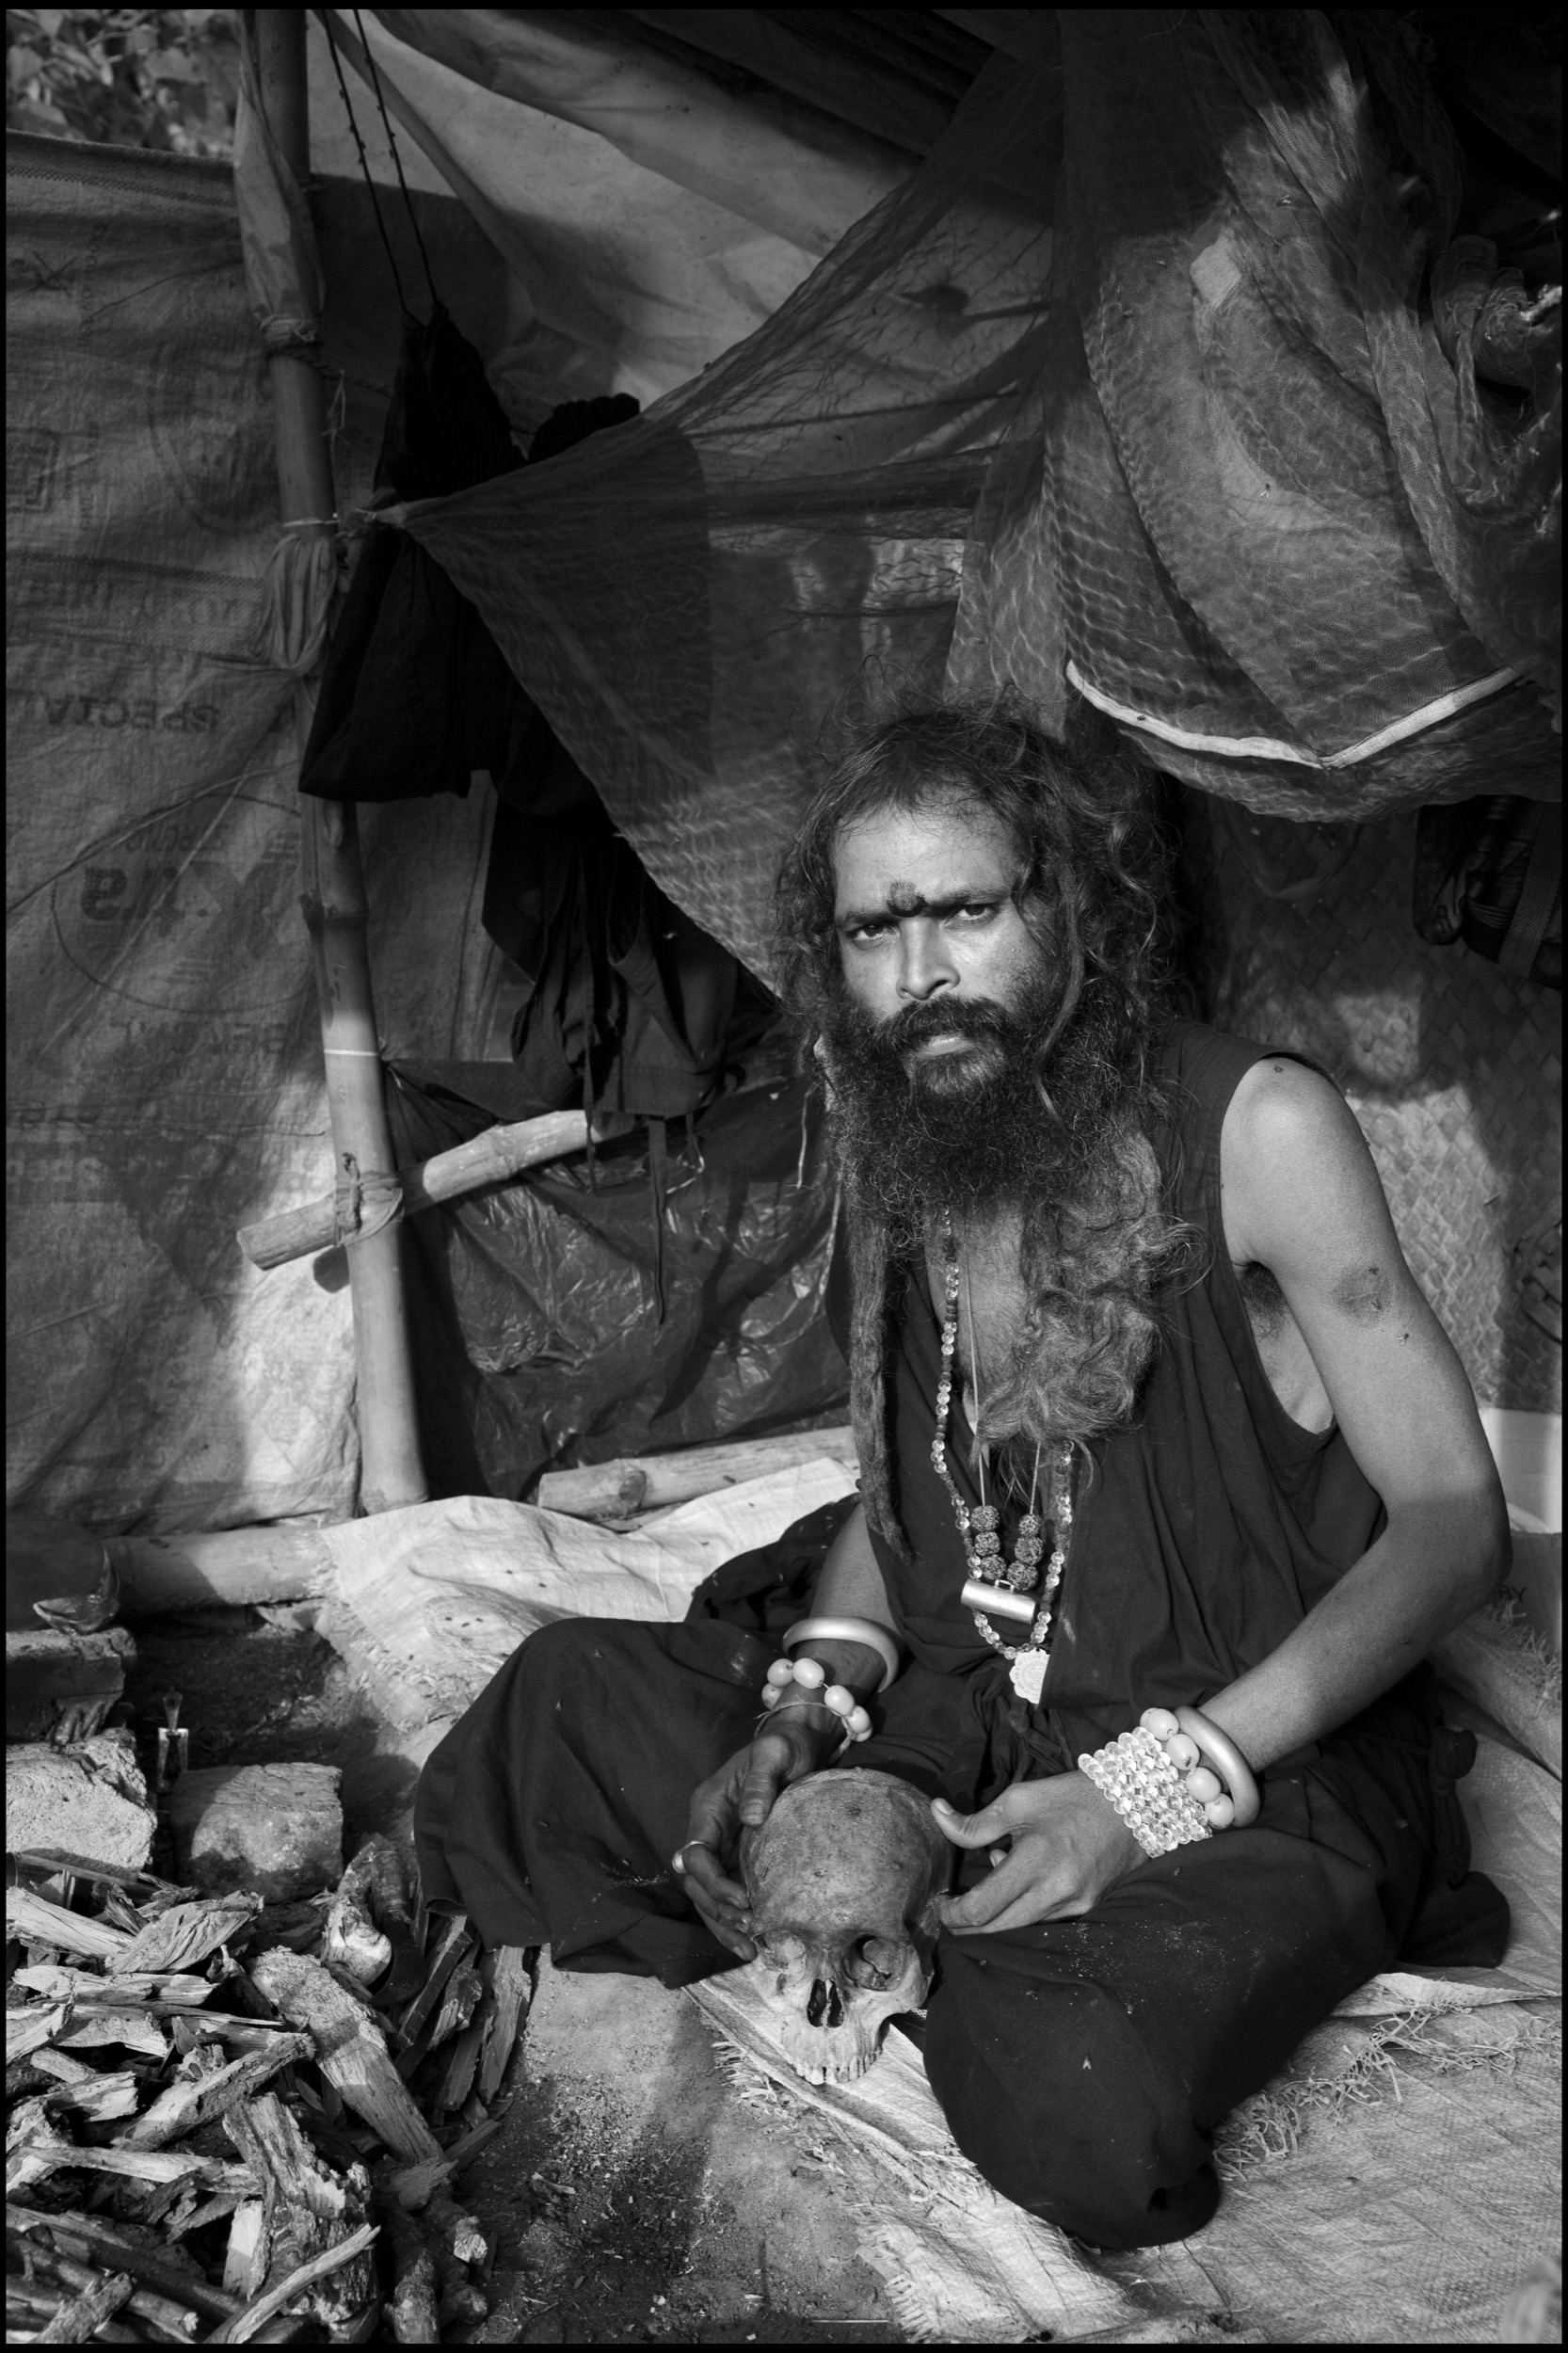 In the grounds of the Bamakhepa burning ghat, a Tantric sannyasi uses the skull of his dead guru 'to enhance his spiritual powers' during meditation; Tarapith, India.